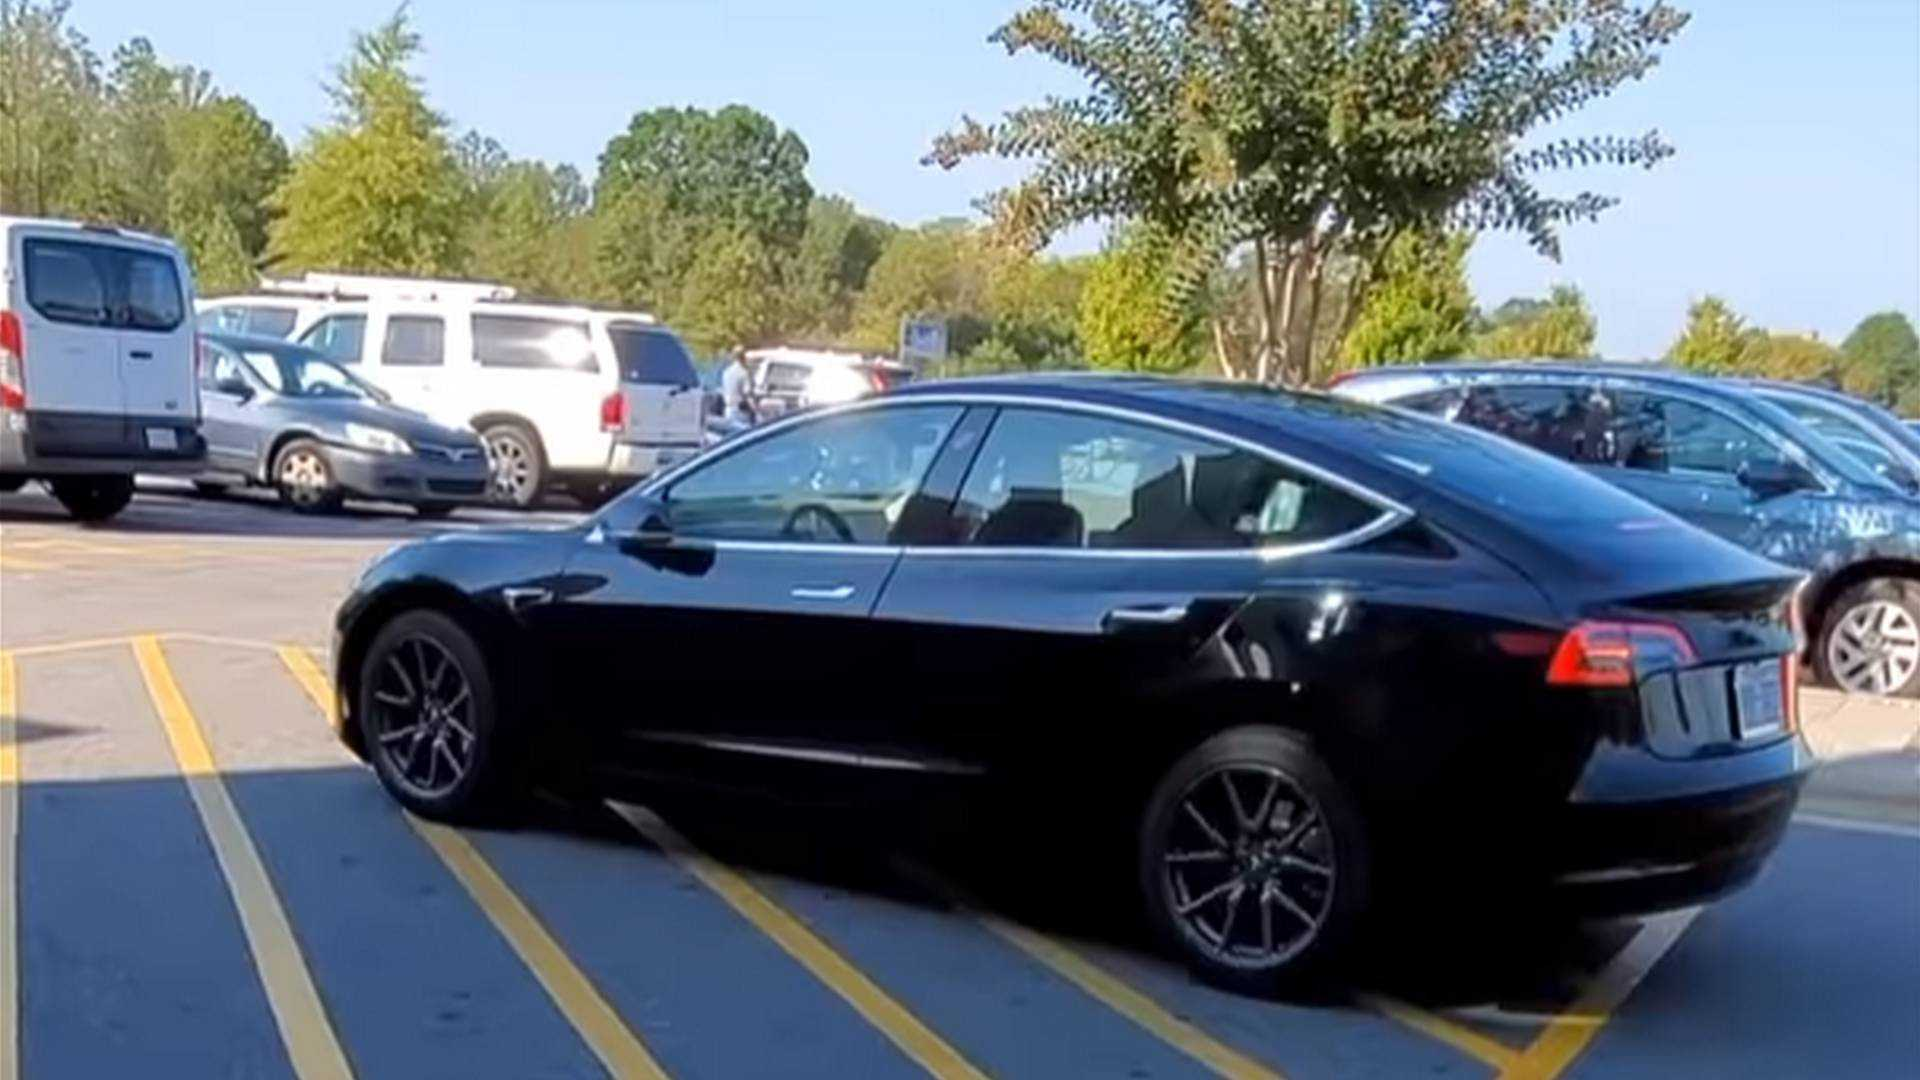 Consumer Reports Calls Tesla Smart Summon 'Glitchy' & Without Benefits